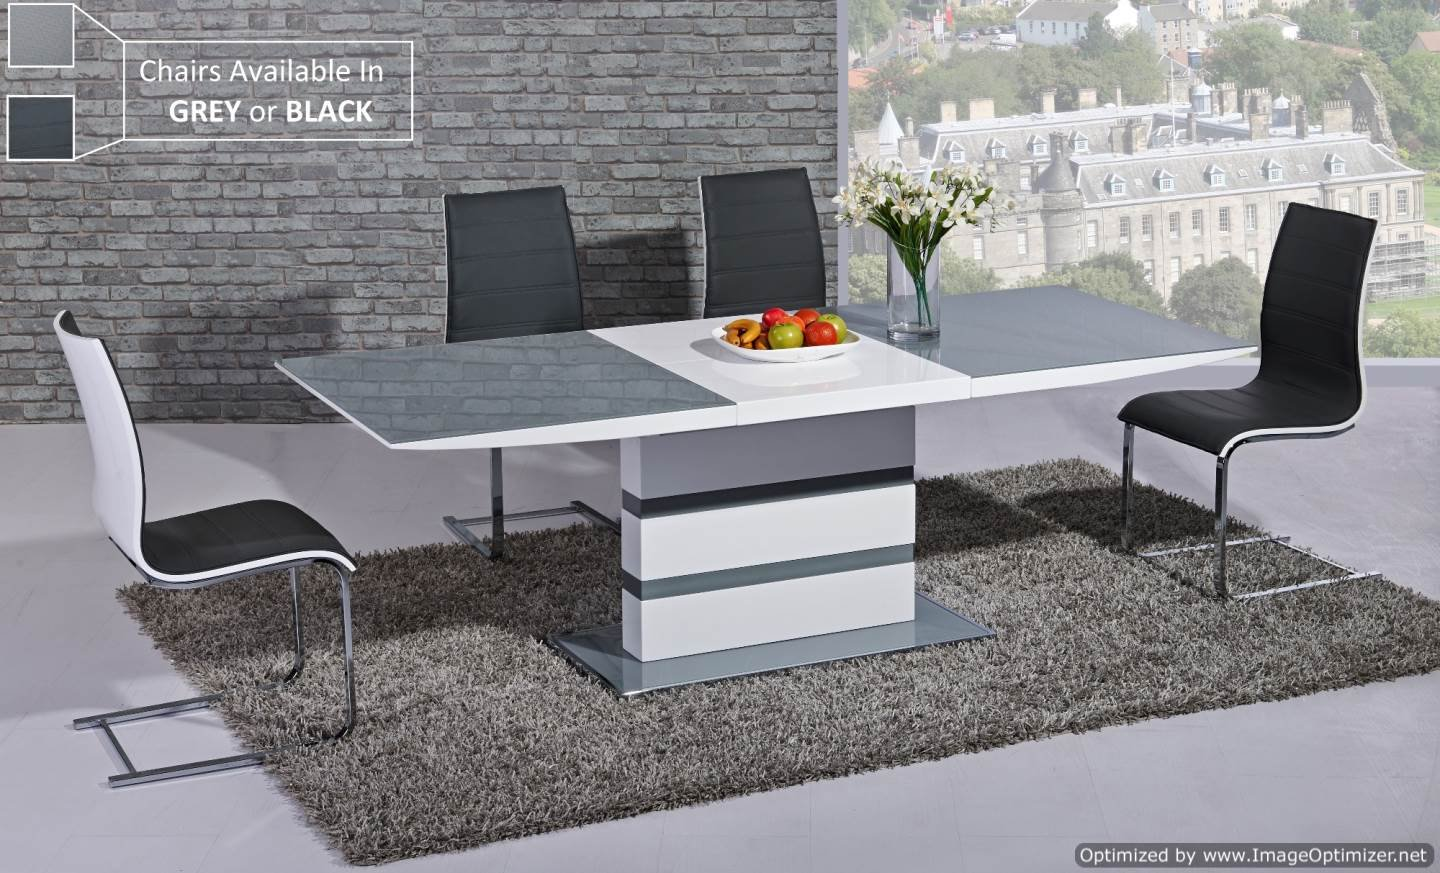 Furniture mill outlet arctic extending dining table in grey from giatalia extending function very stylish contemporary italian dining amazon co uk